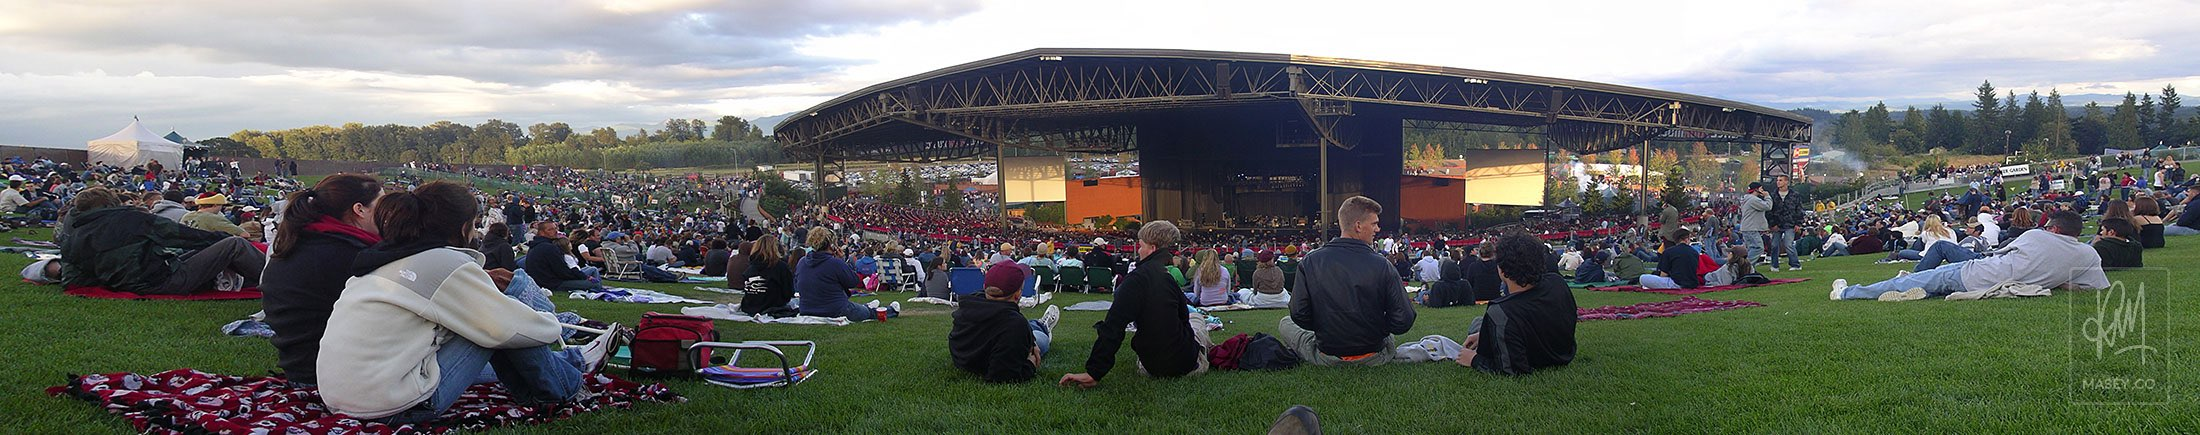 A panoramic capture of the White River Amphitheatre